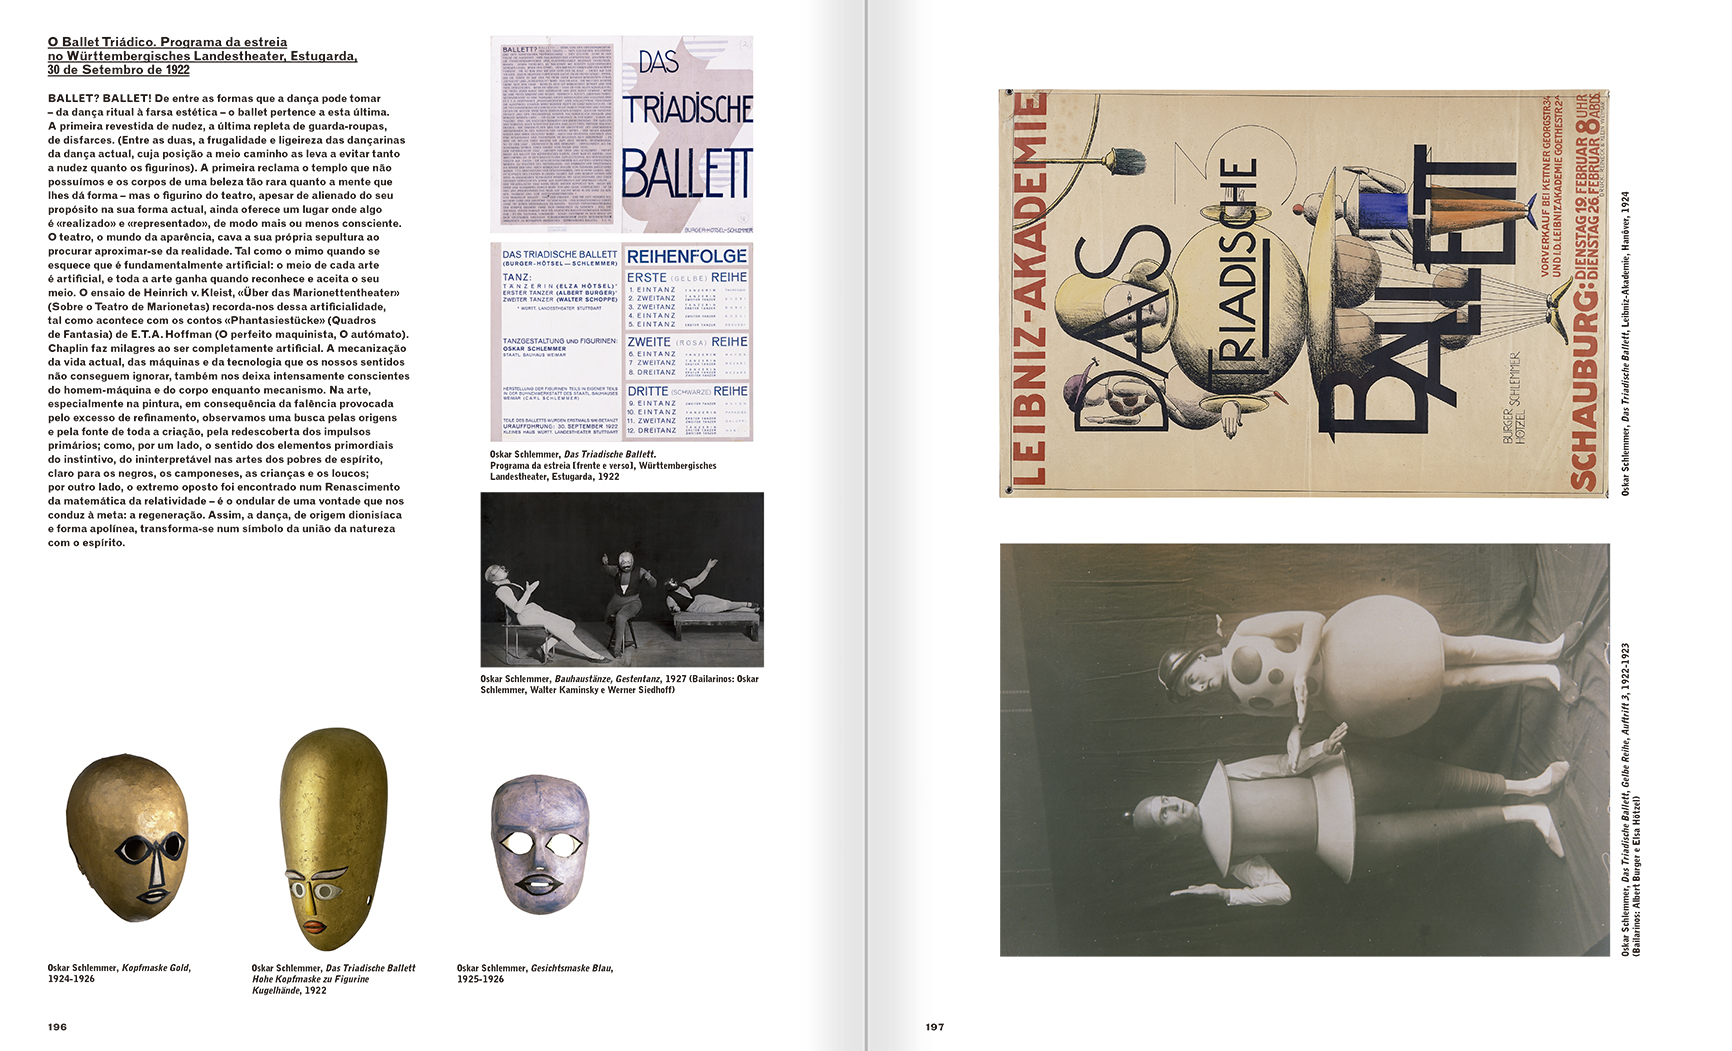 Selection from the catalogue 'A Theater without Theater', pages 196 and 197